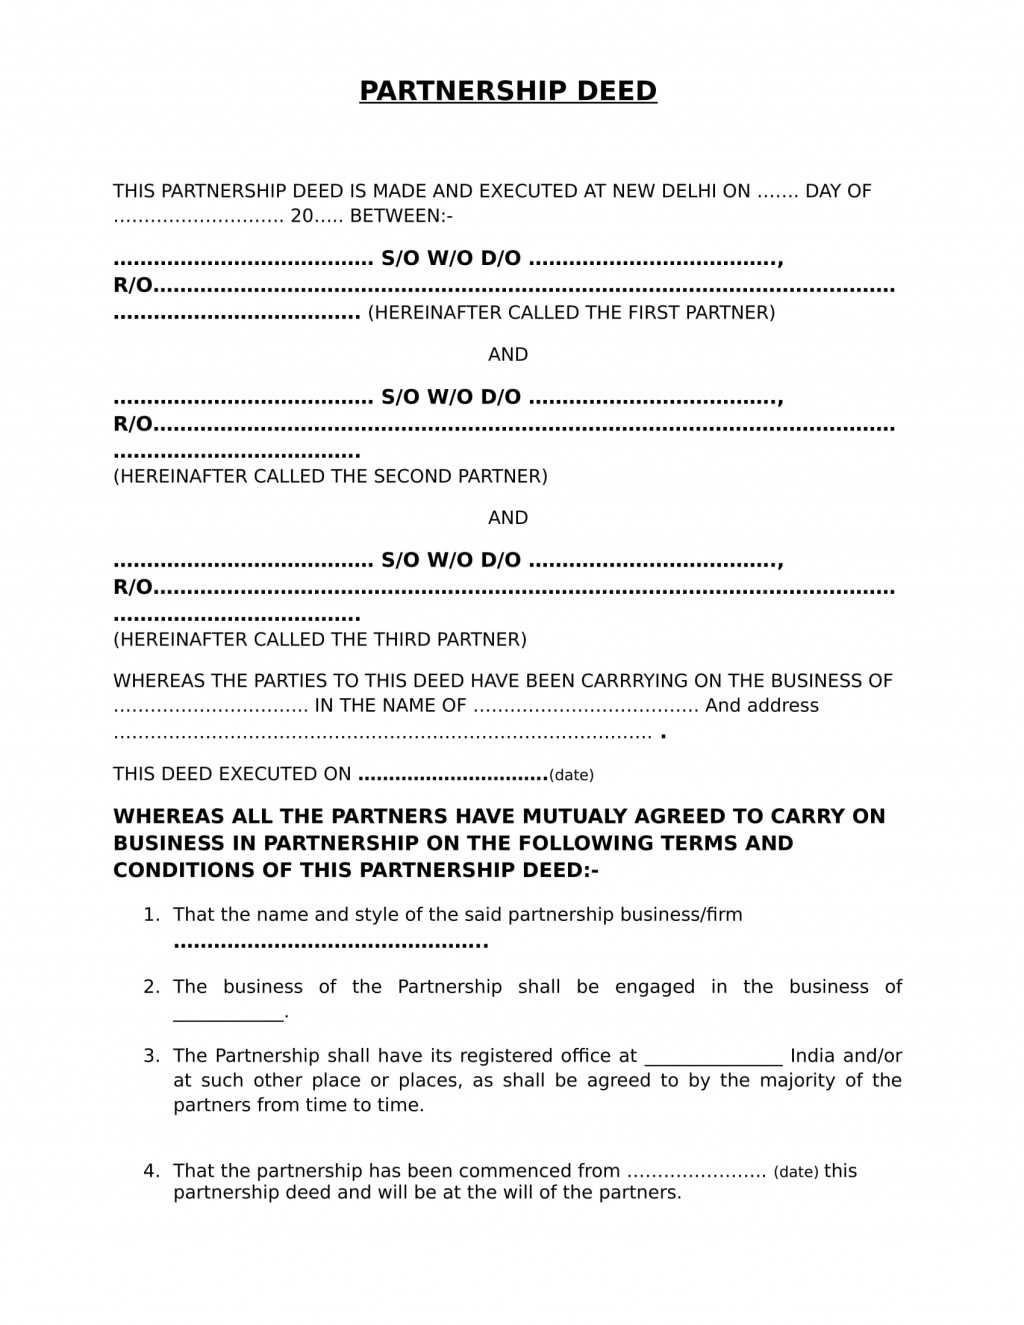 Partnership deed form edrafter sample of partnership deed altavistaventures Image collections